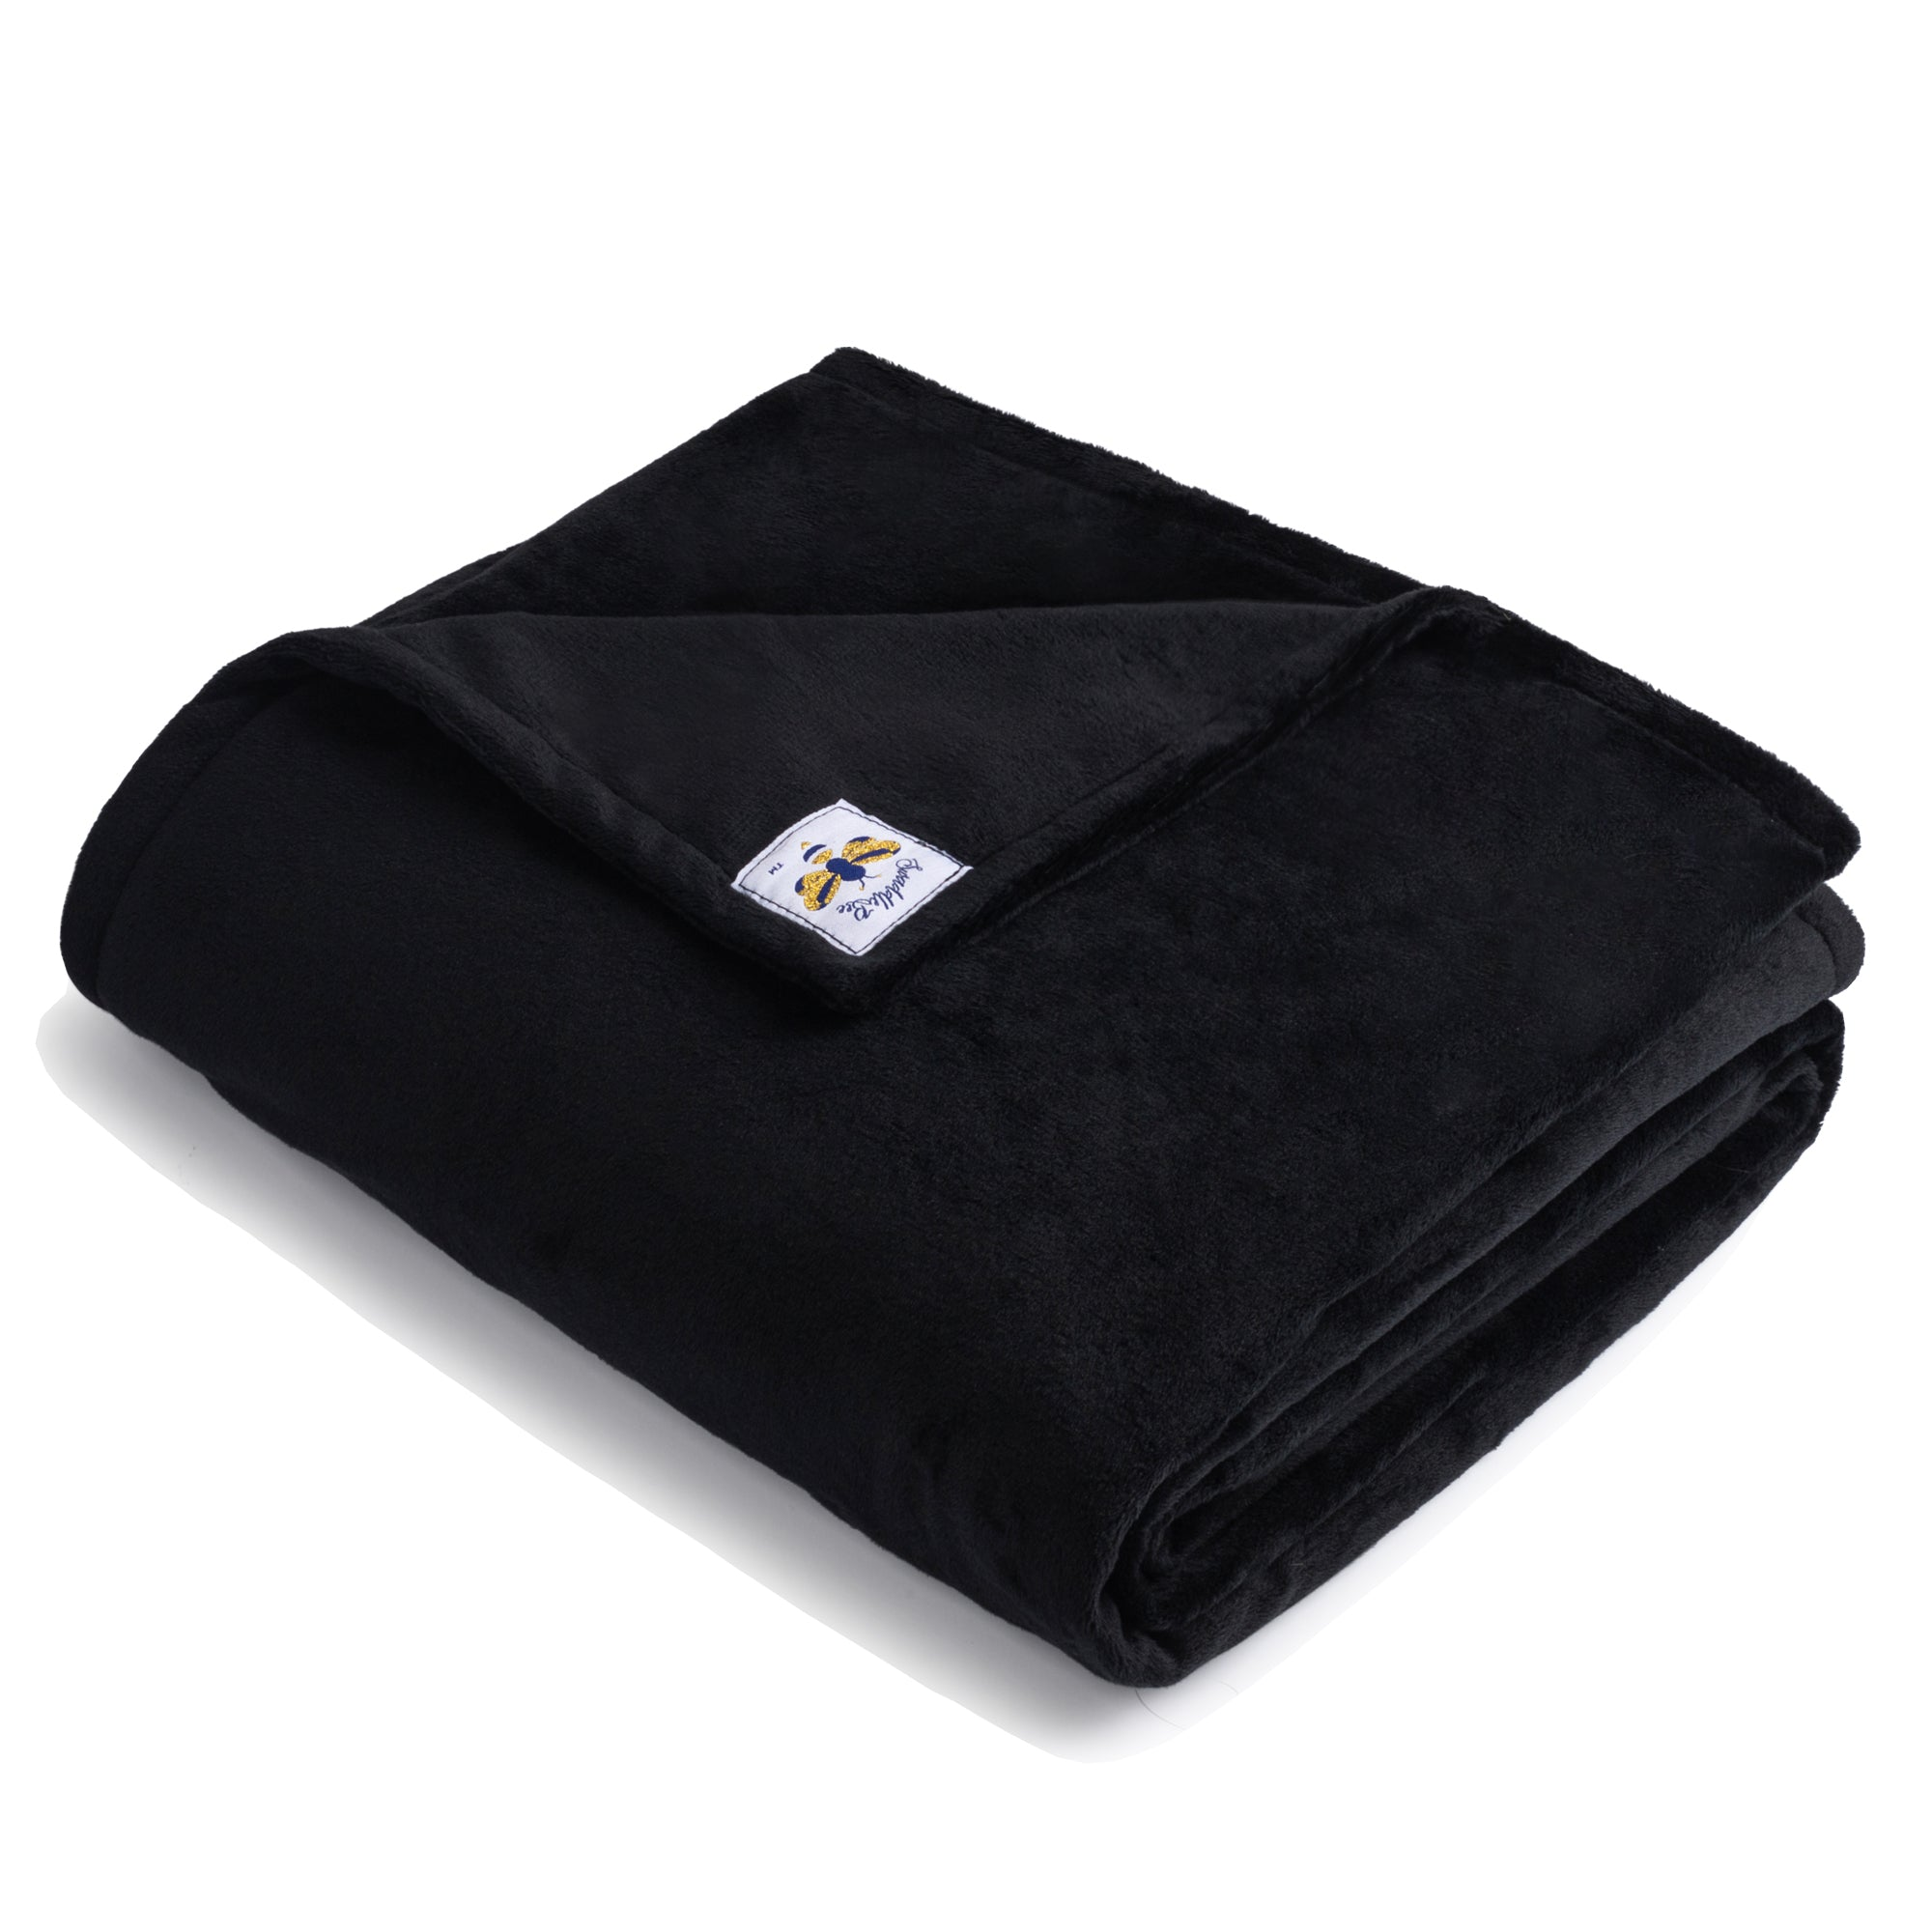 BiggerBee Minky Throw Blanket Black